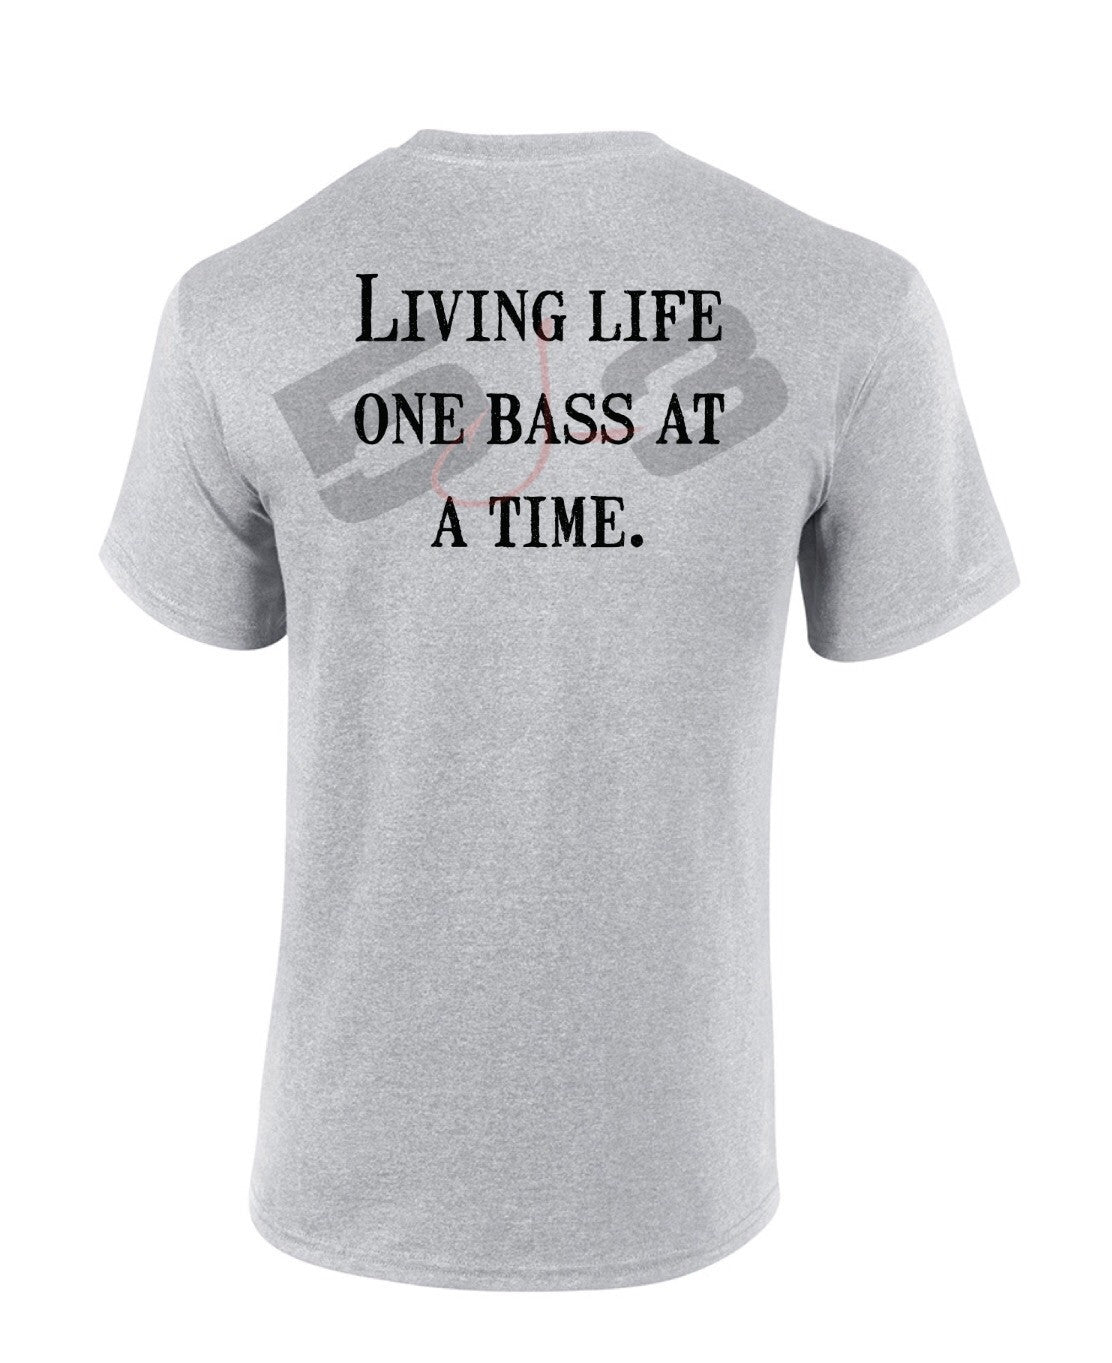 Living Life One Bass At A Time Short Sleeve T-shirt